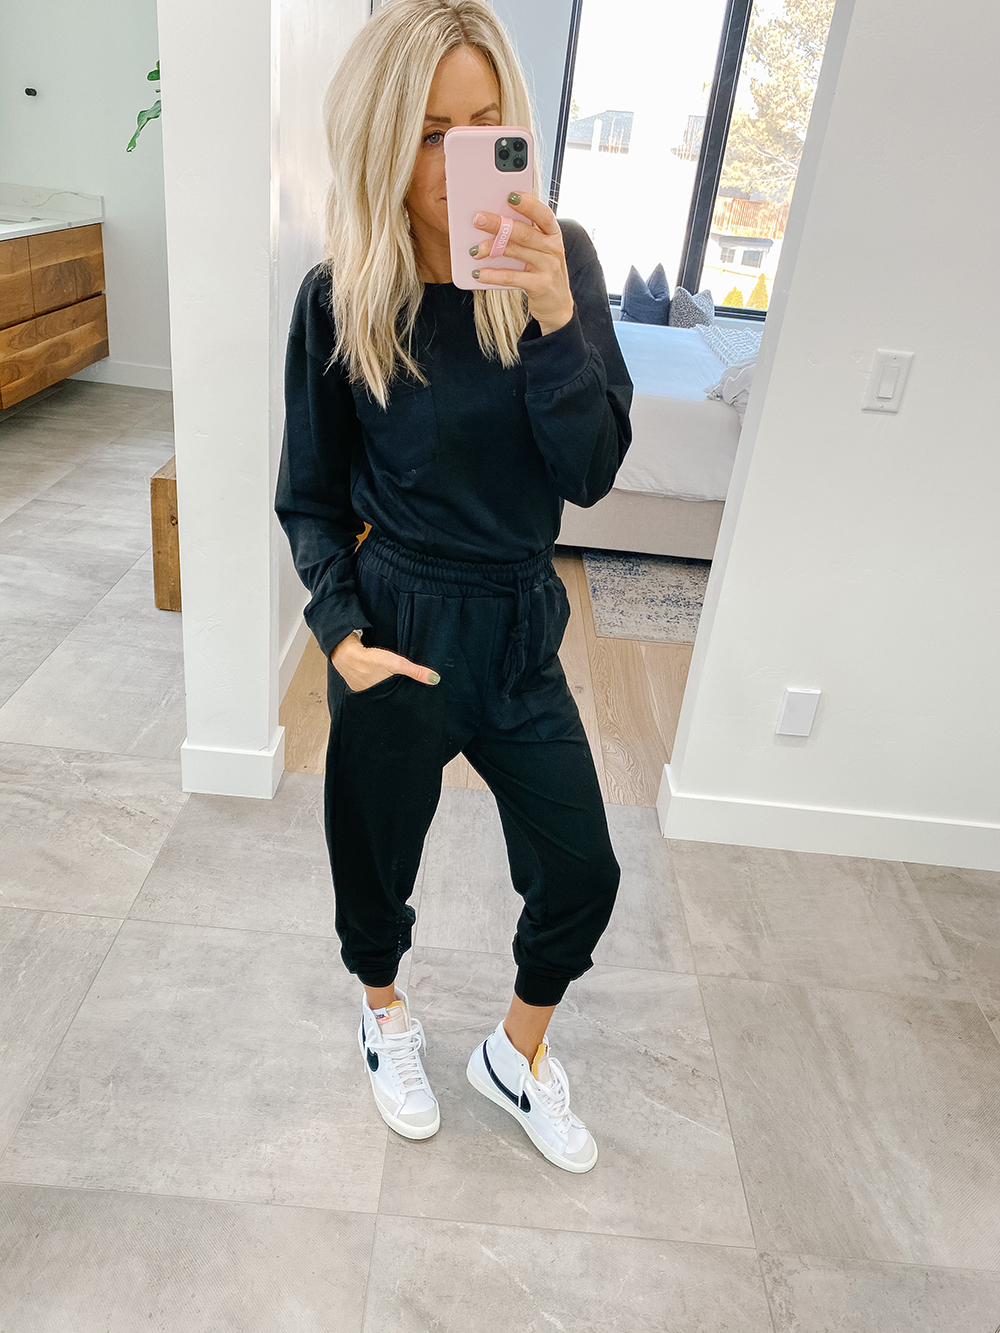 kailee wright amazon jogger set